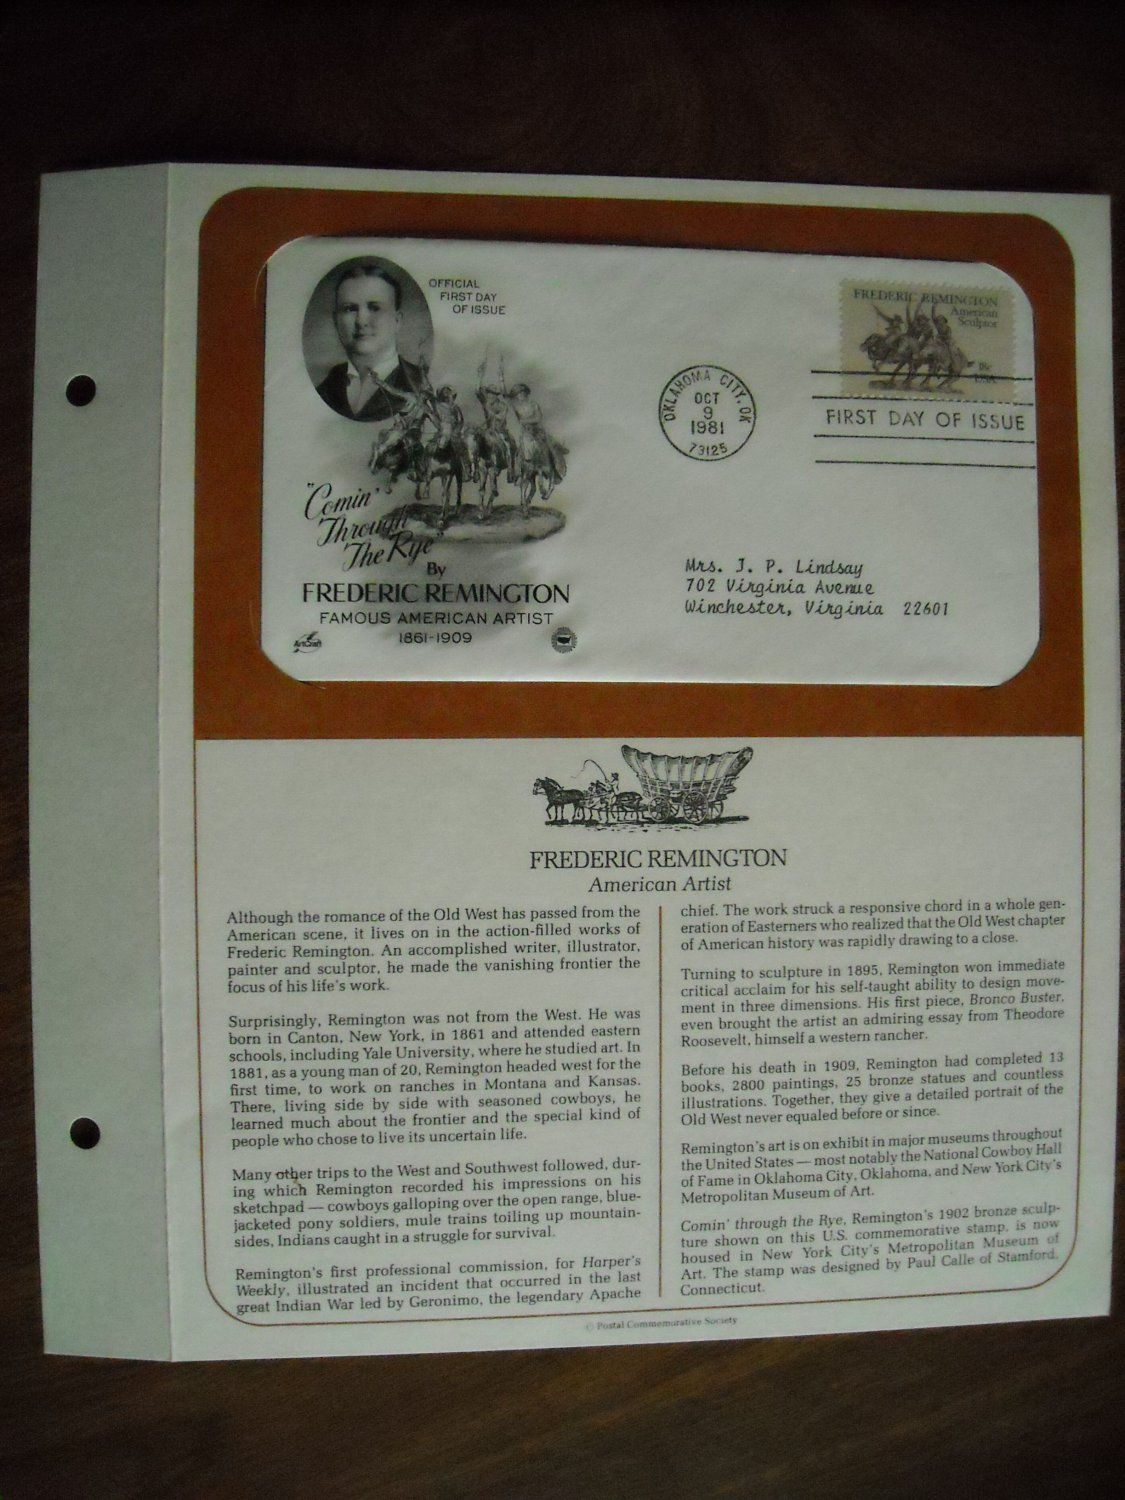 Frederic Remington American Artist 1981 Postal Commemorative Society First Day Cover Sheet